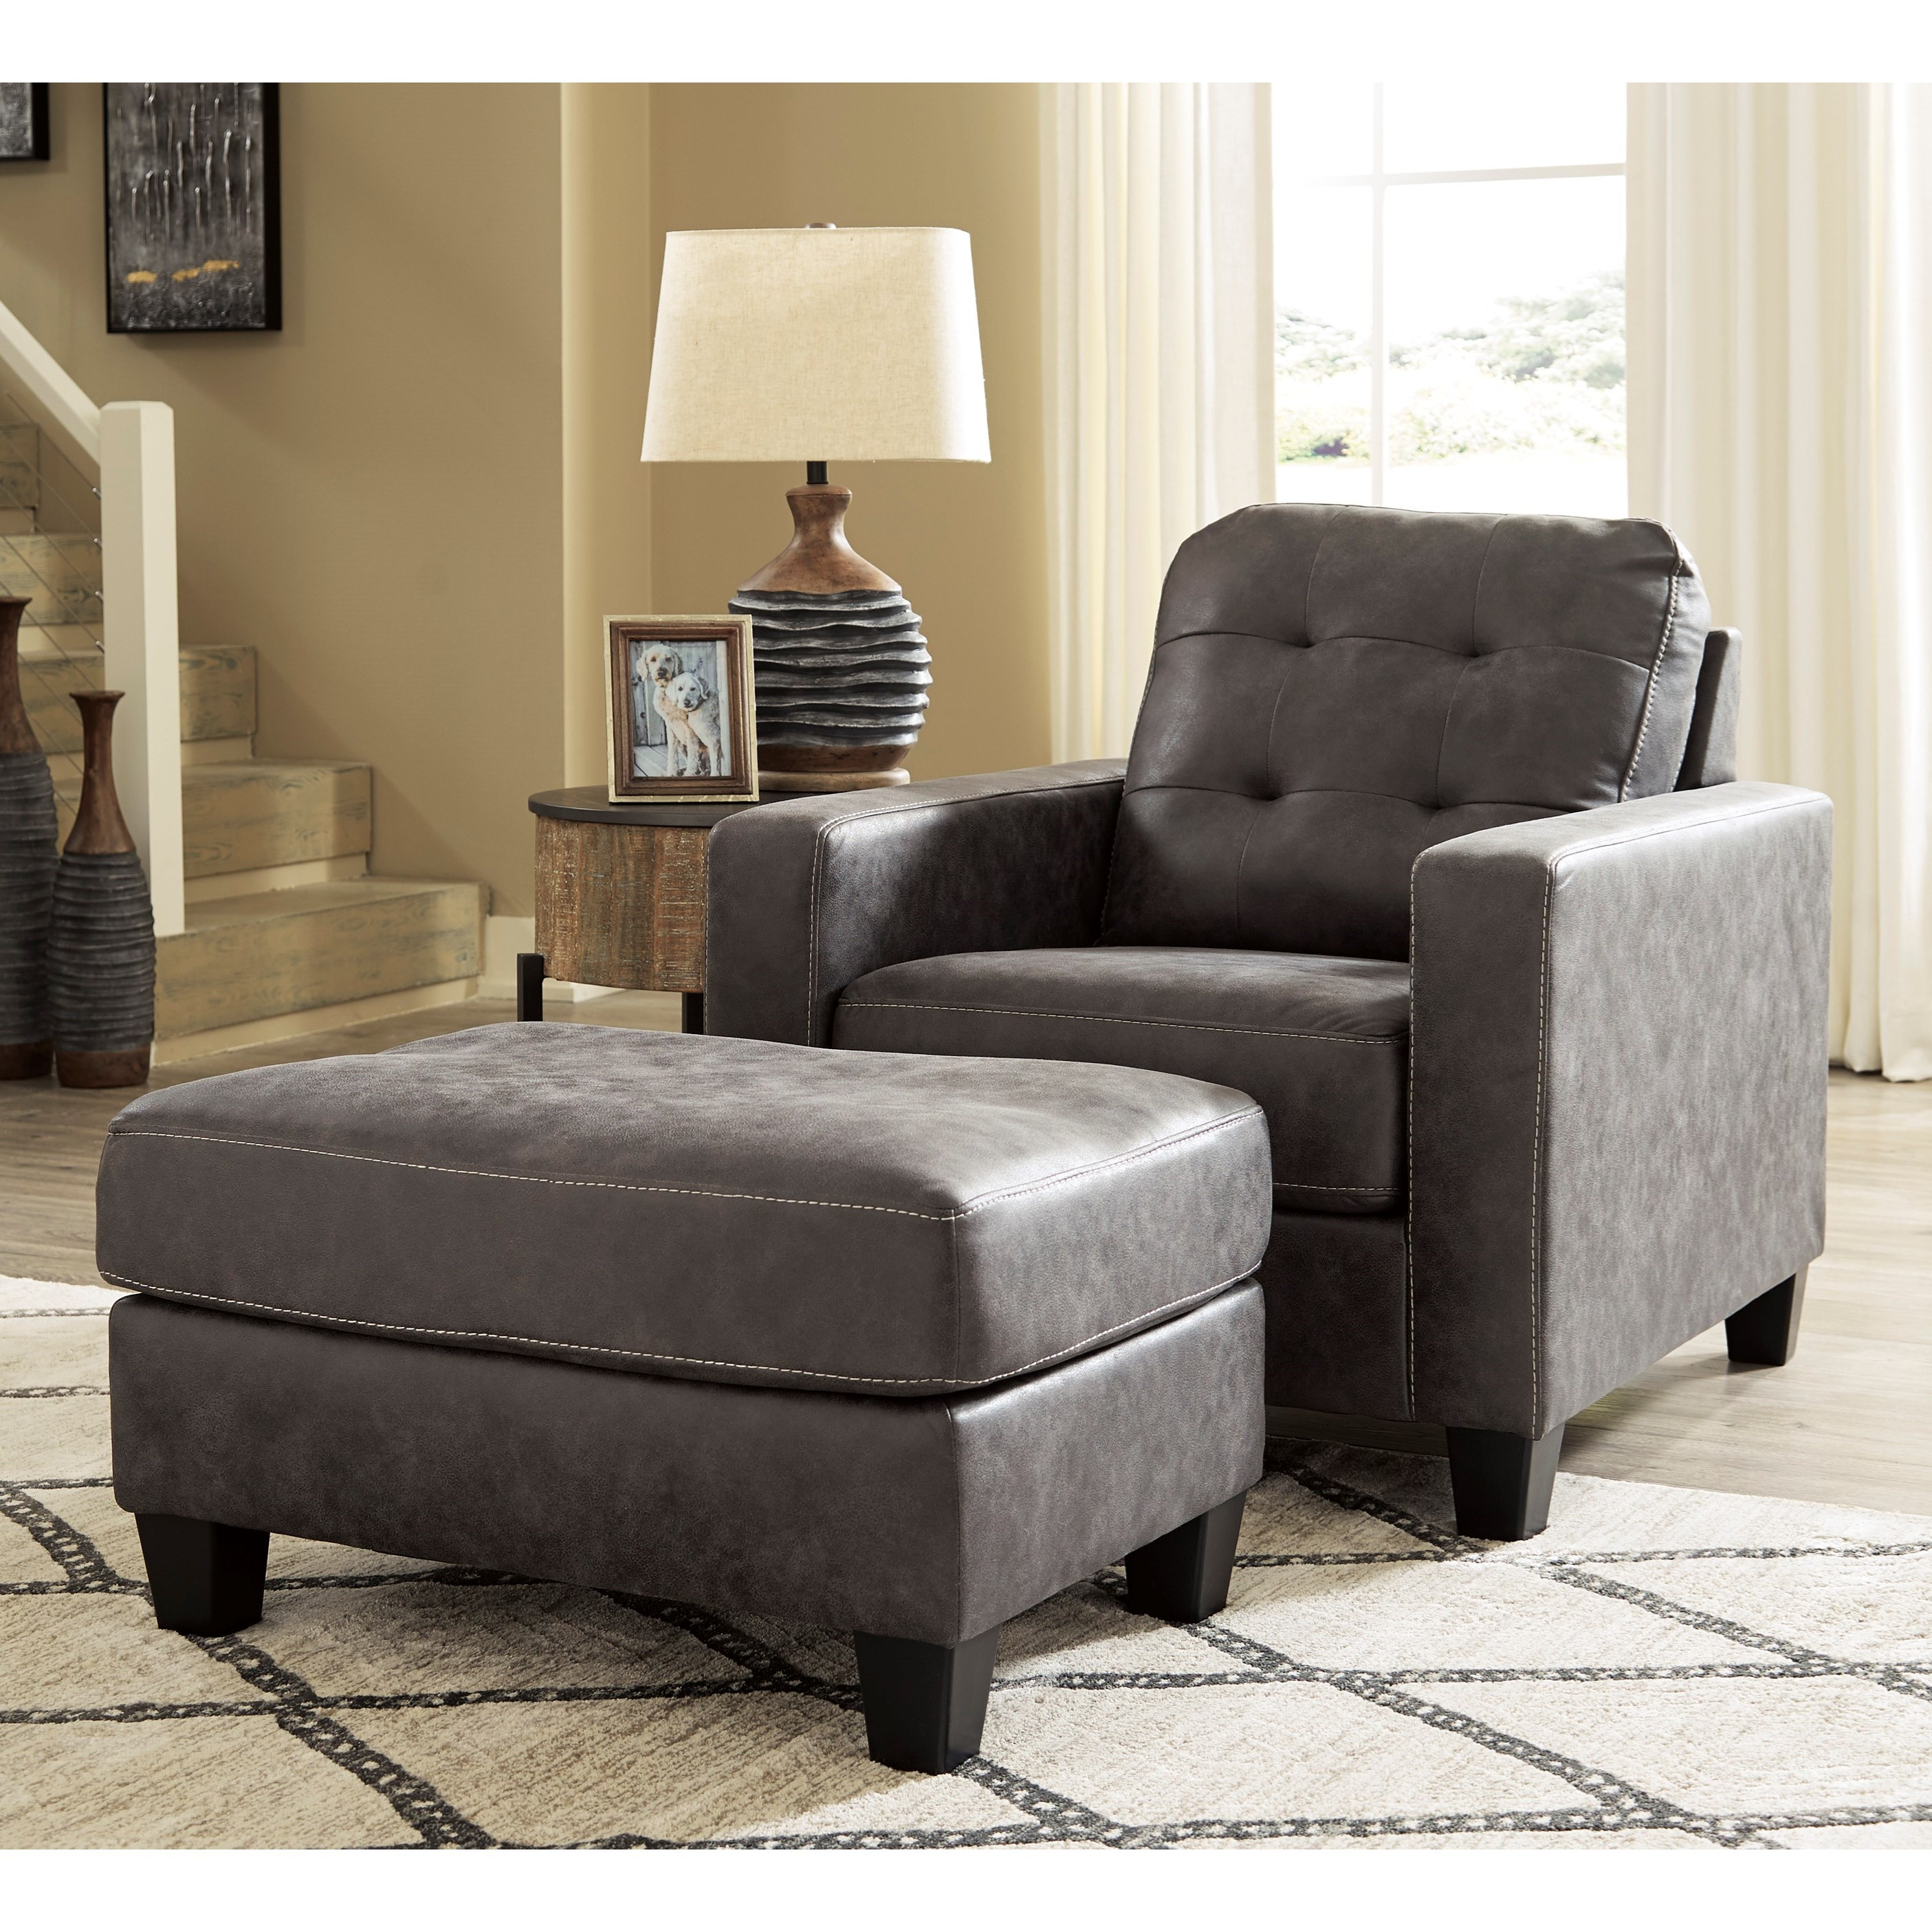 Venaldi Chair and Ottoman Set by Benchcraft at Walker's Furniture